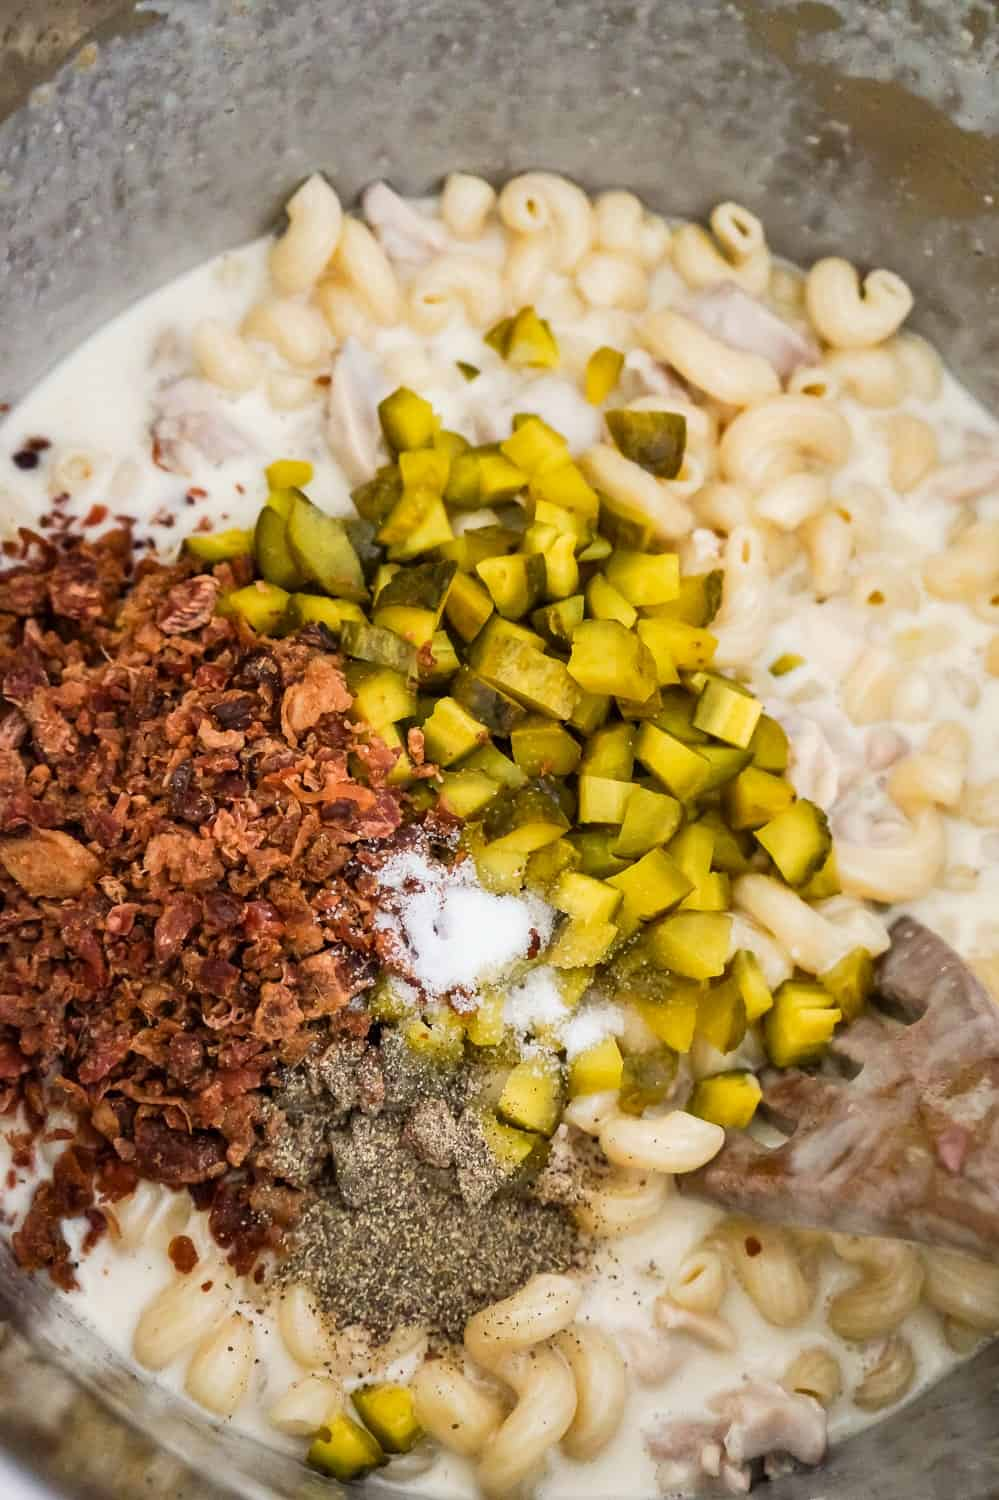 crumbled bacon, spices and diced dill pickles on top of creamy pasta in an Instant Pot